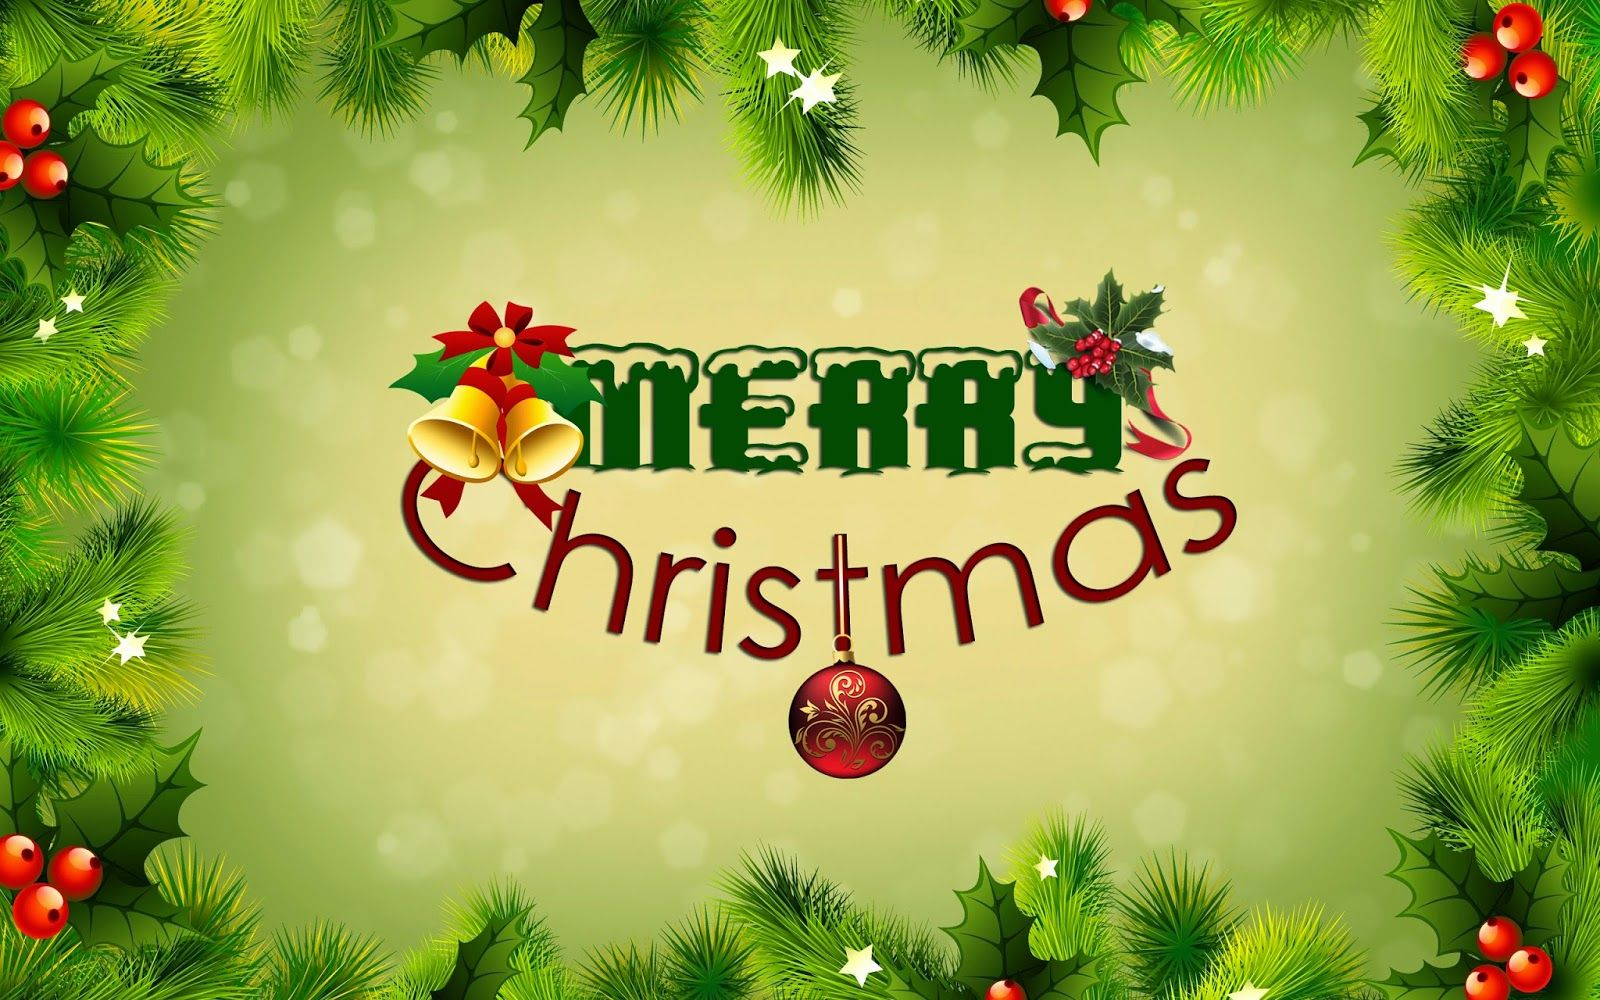 Merry Christmas 2015 Wishes And Pictures Photos Free Download Share ...